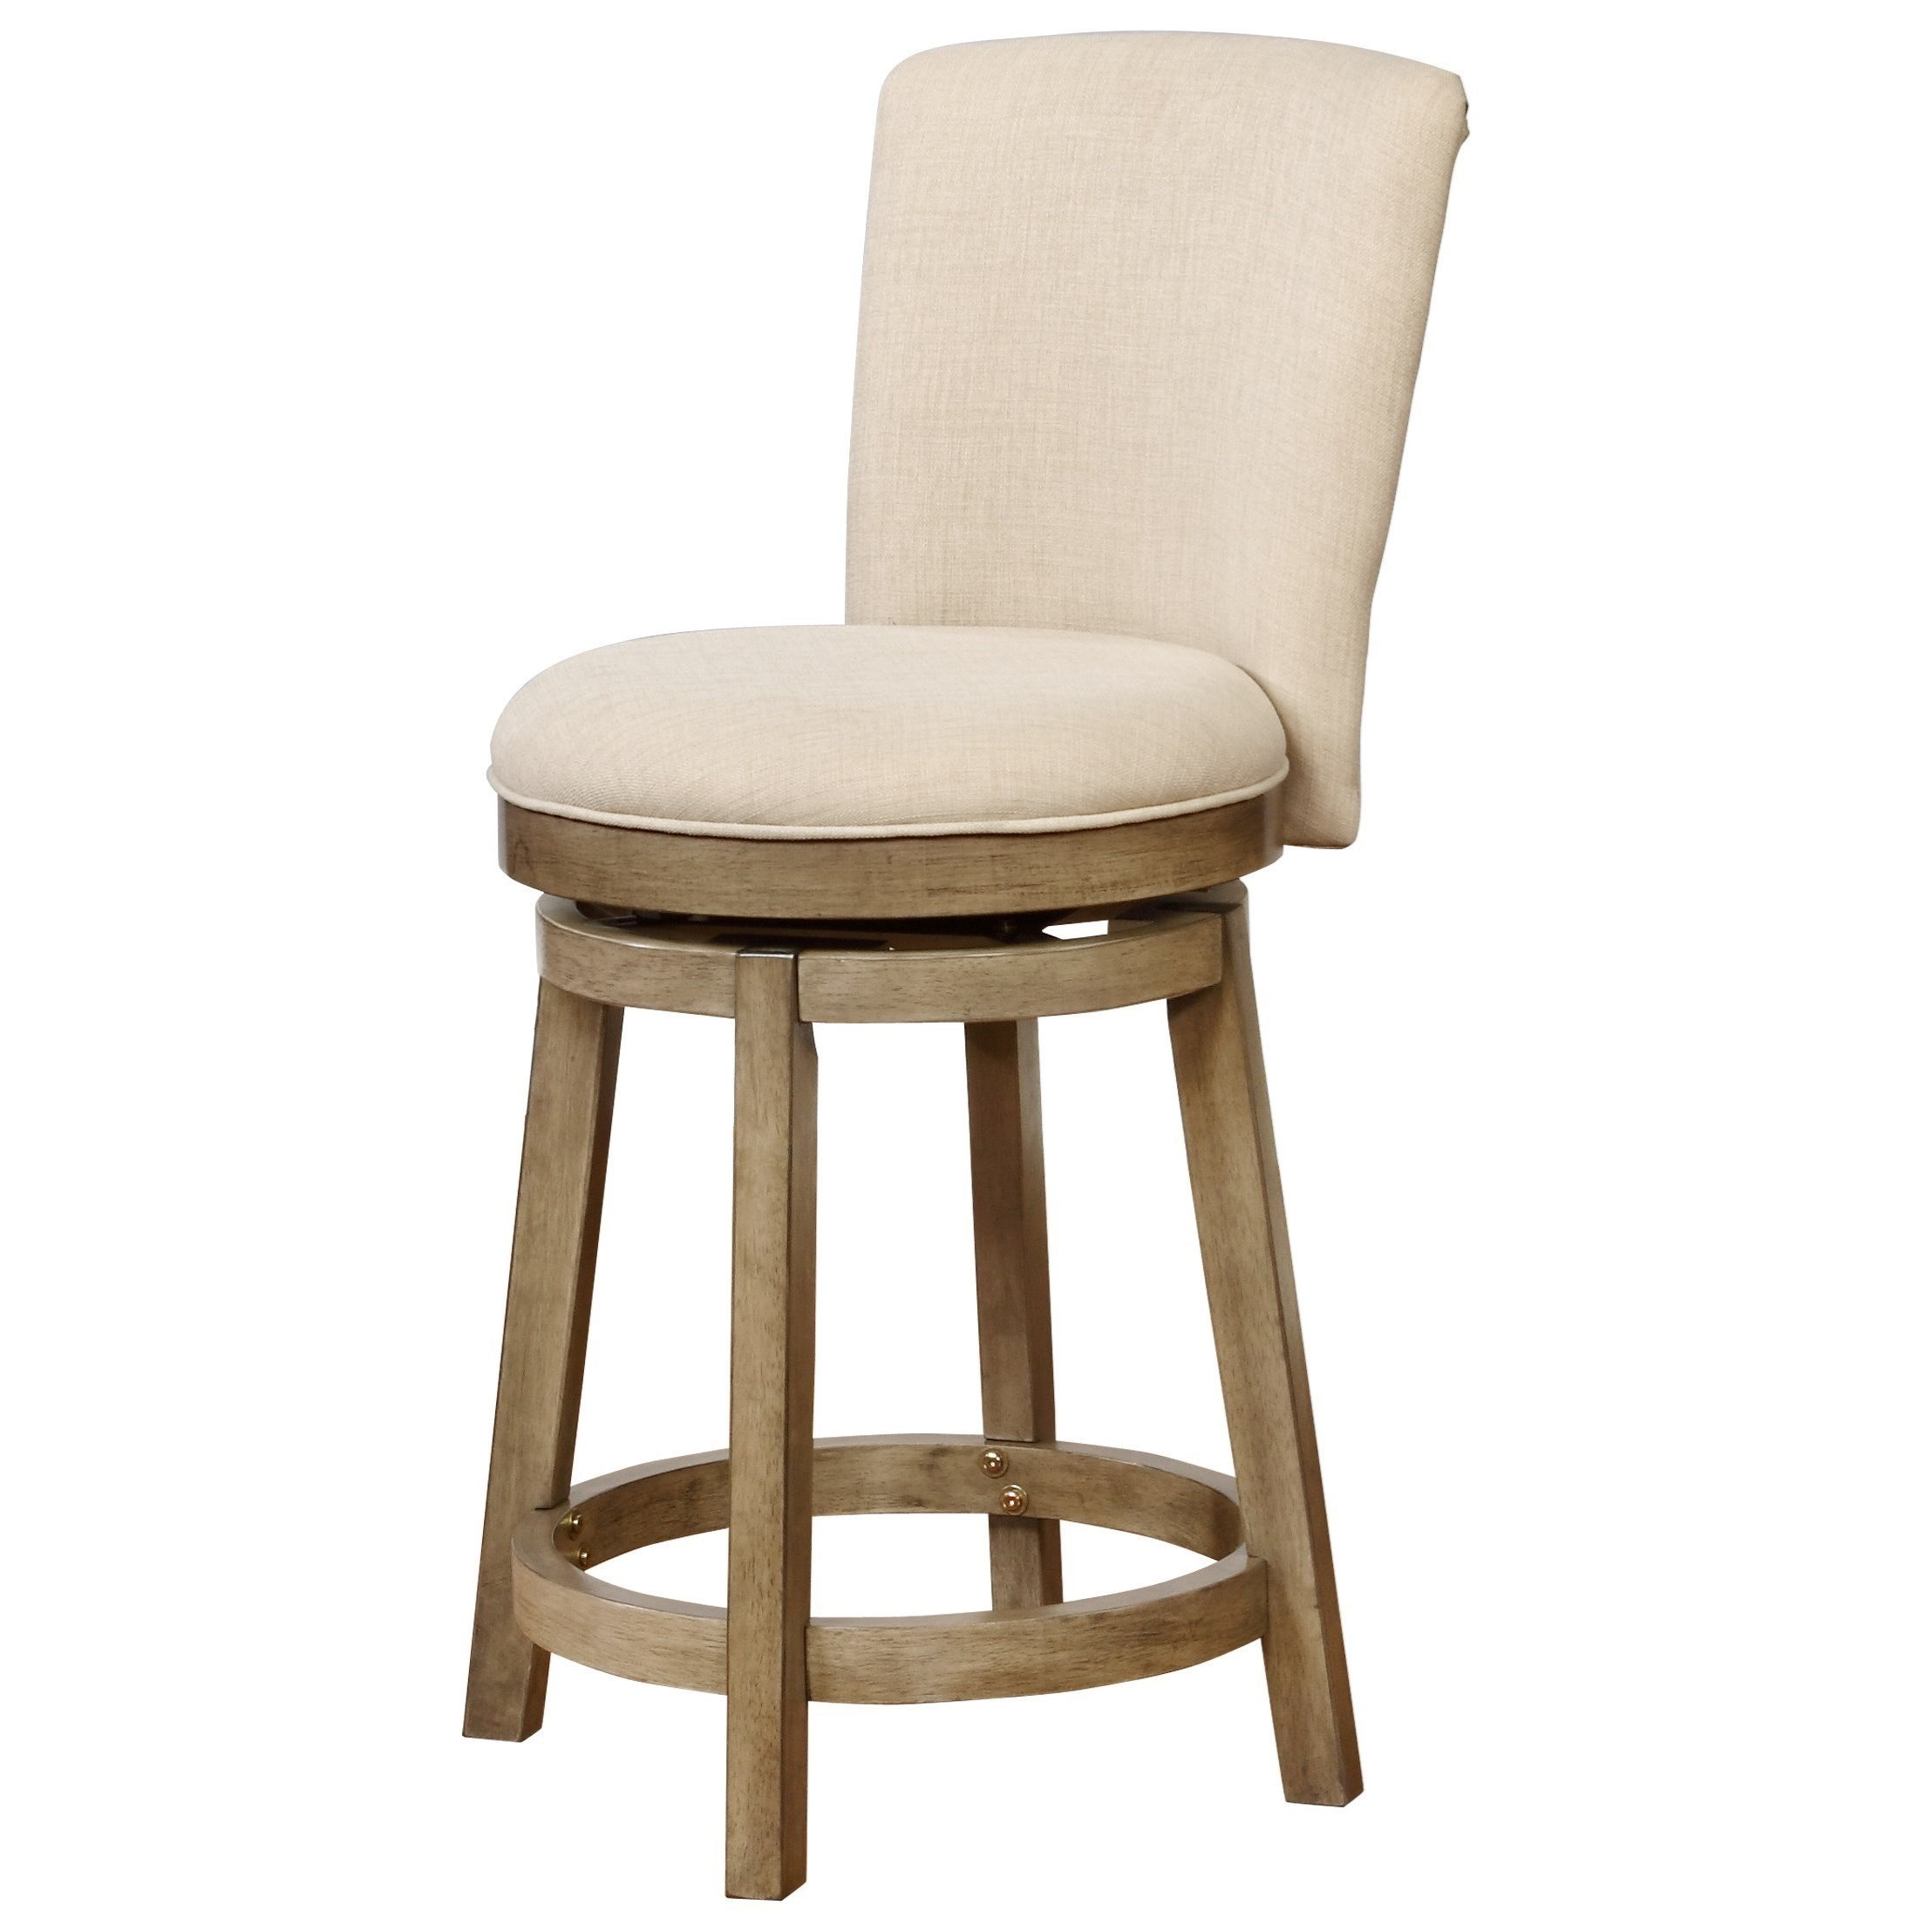 Upholstered Bar Chairs Powell Bar Stools And Tables Davis Upholstered Counterstool